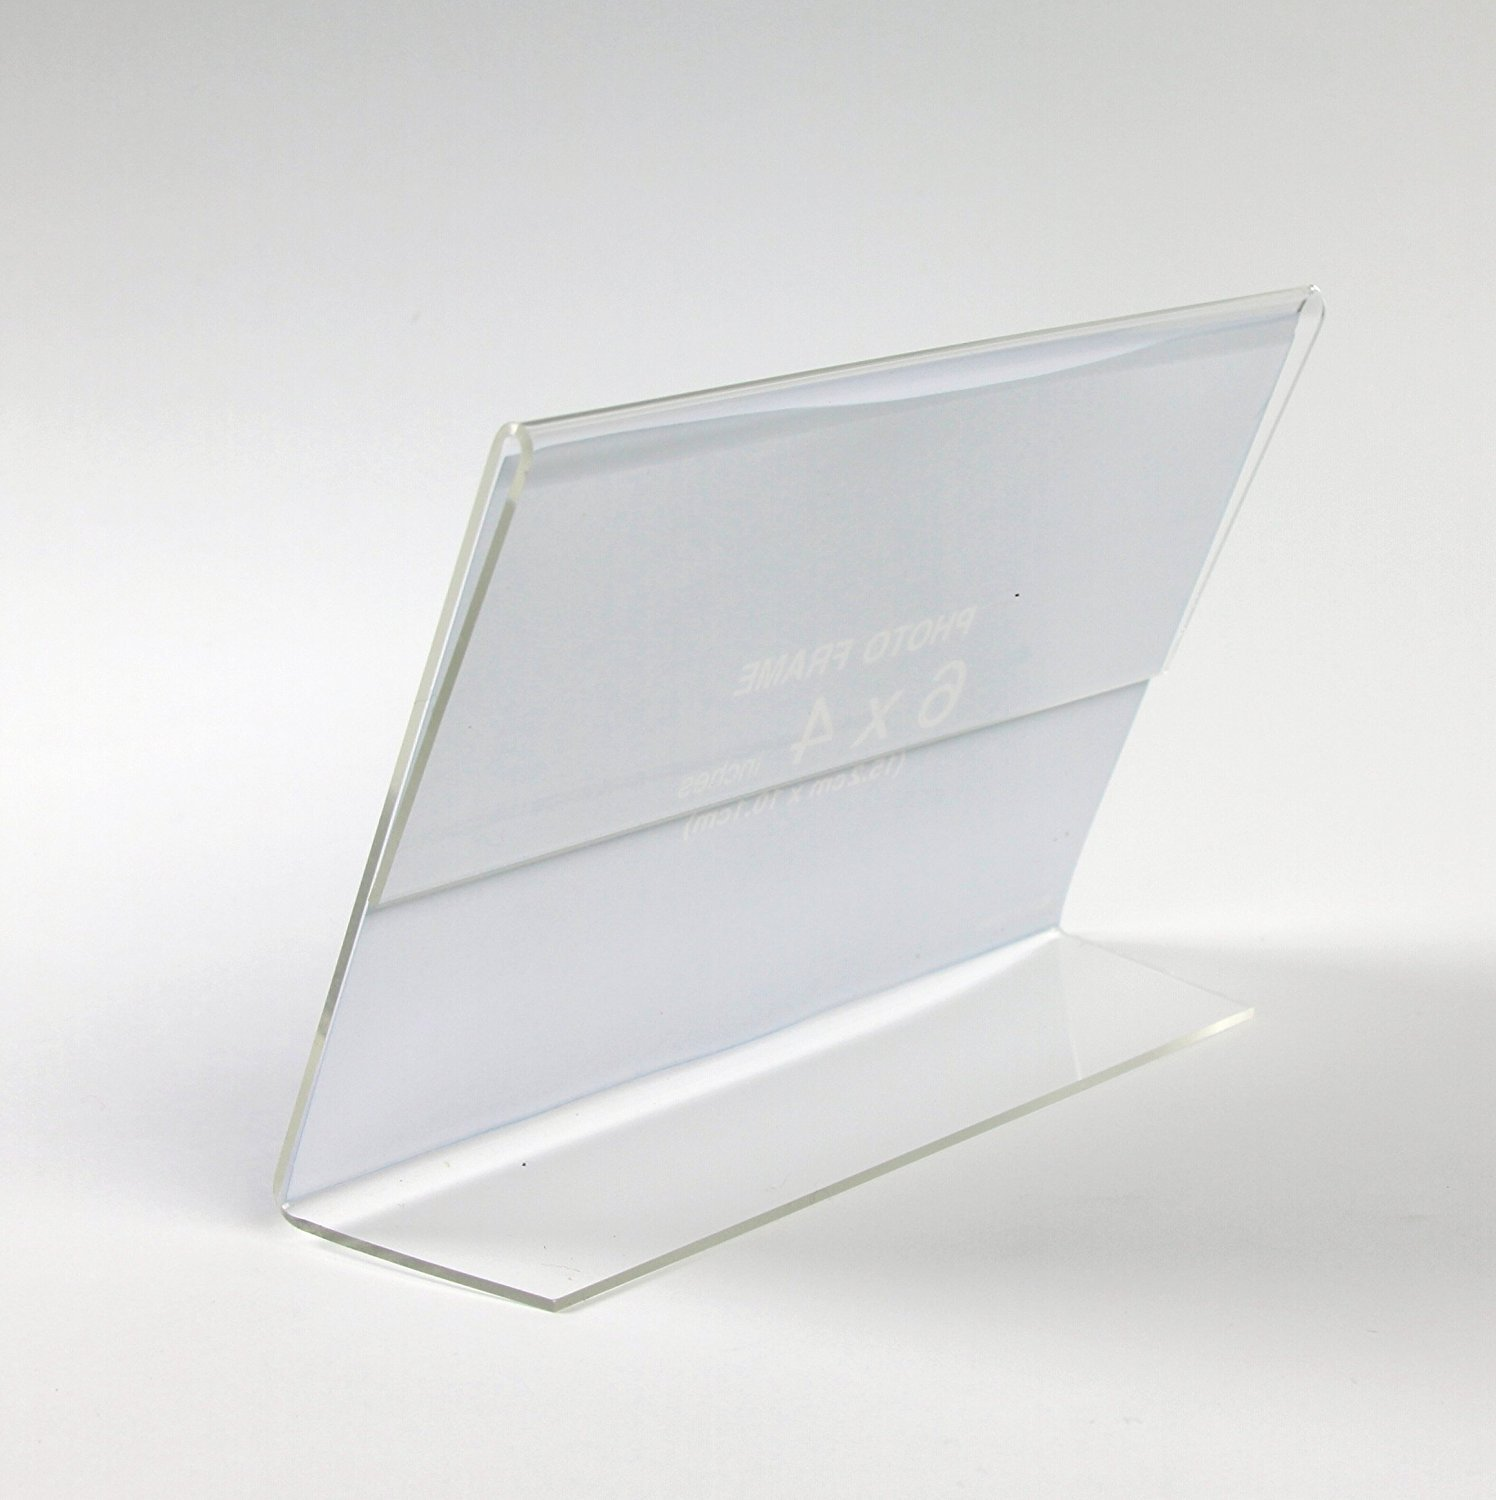 400pack of 6x9 cm Clear Acrylic Slanted Sign Holders Price Tag Advertisement Display Stand Holder